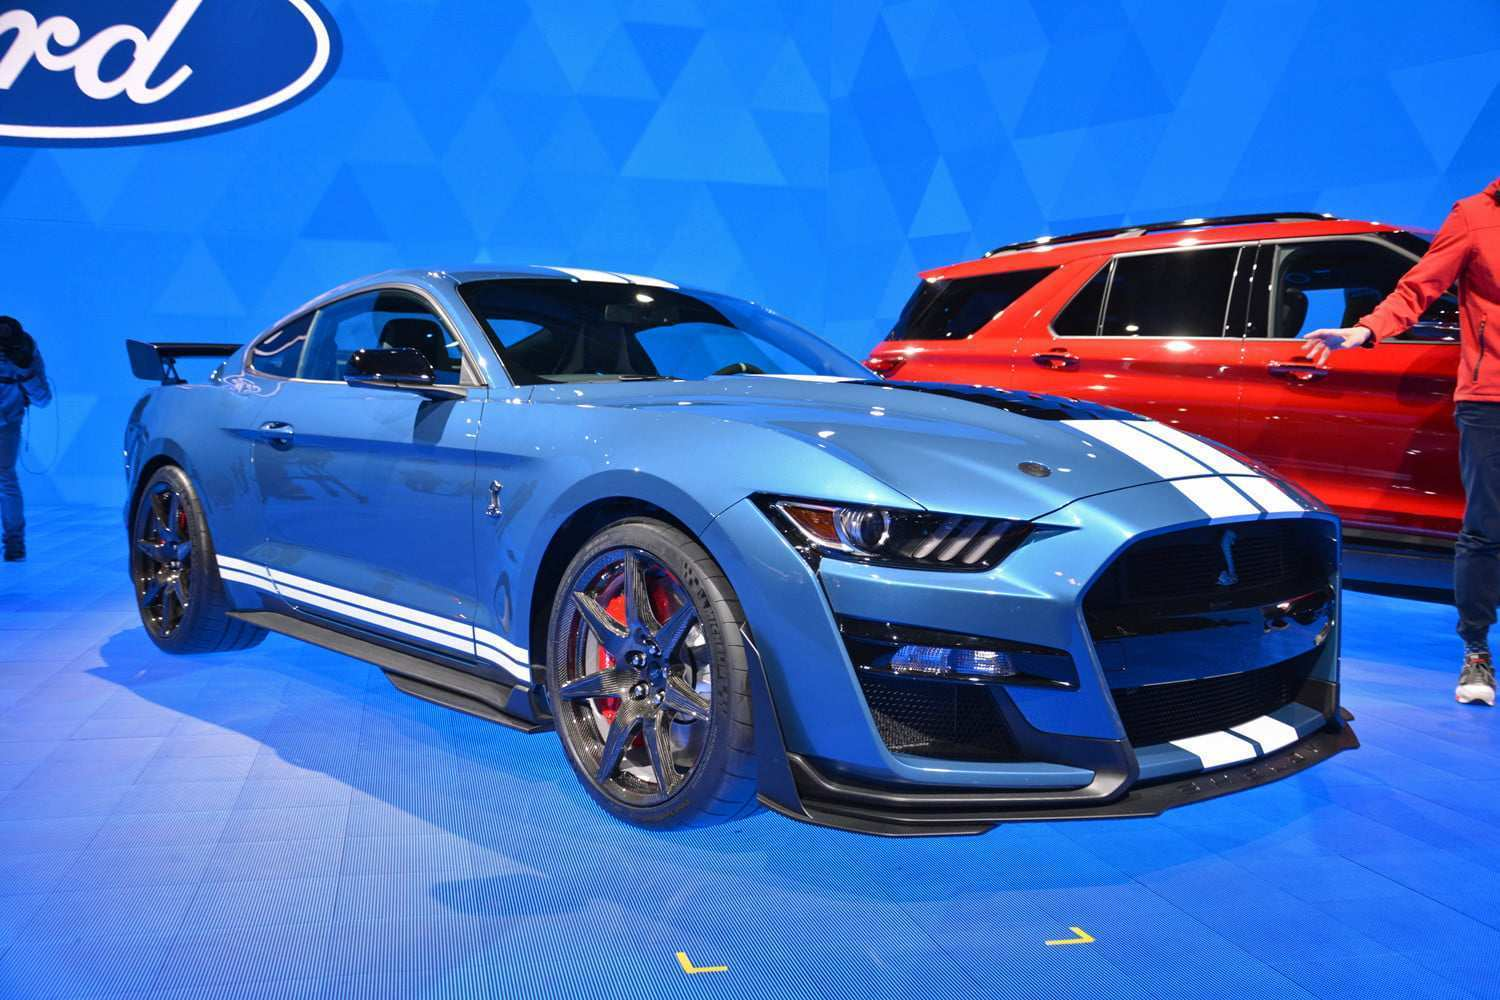 15 Gallery of 2020 Ford Mustang Gt Pictures by 2020 Ford Mustang Gt